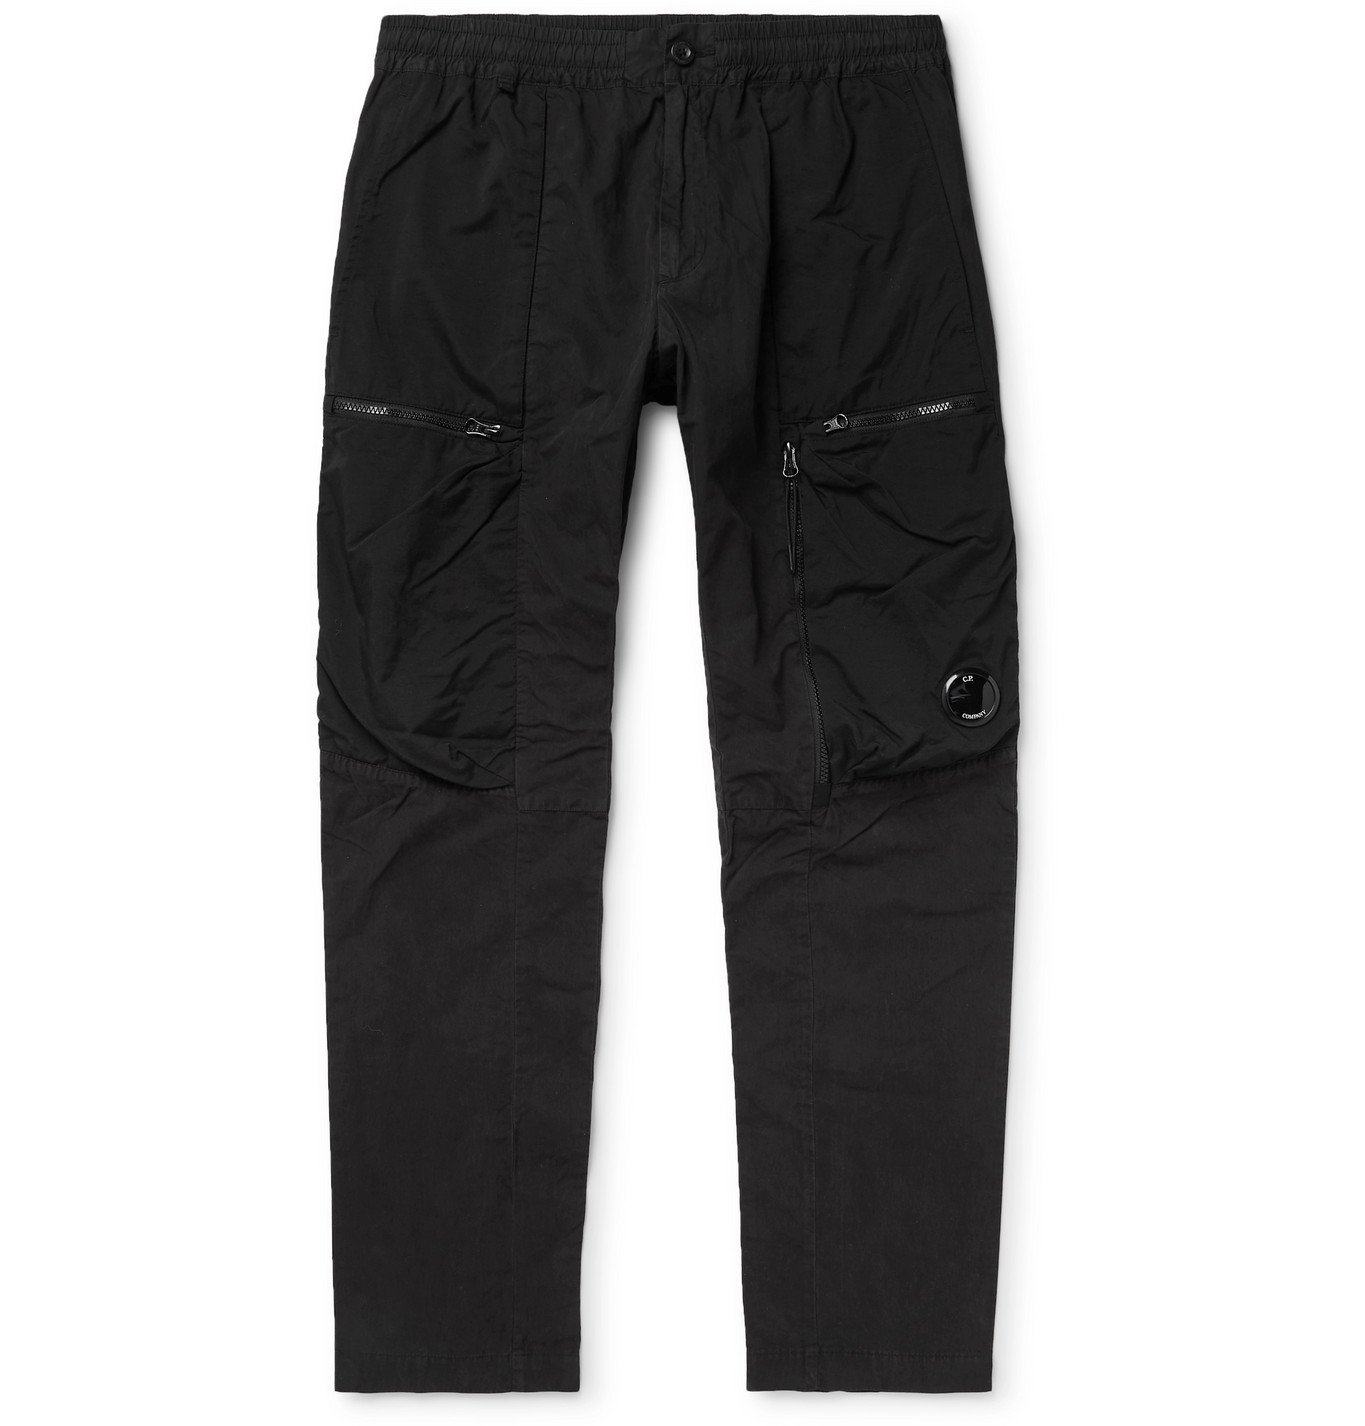 C.P. Company - Slim-Fit Tapered Cotton-Blend Cargo Trousers - Black